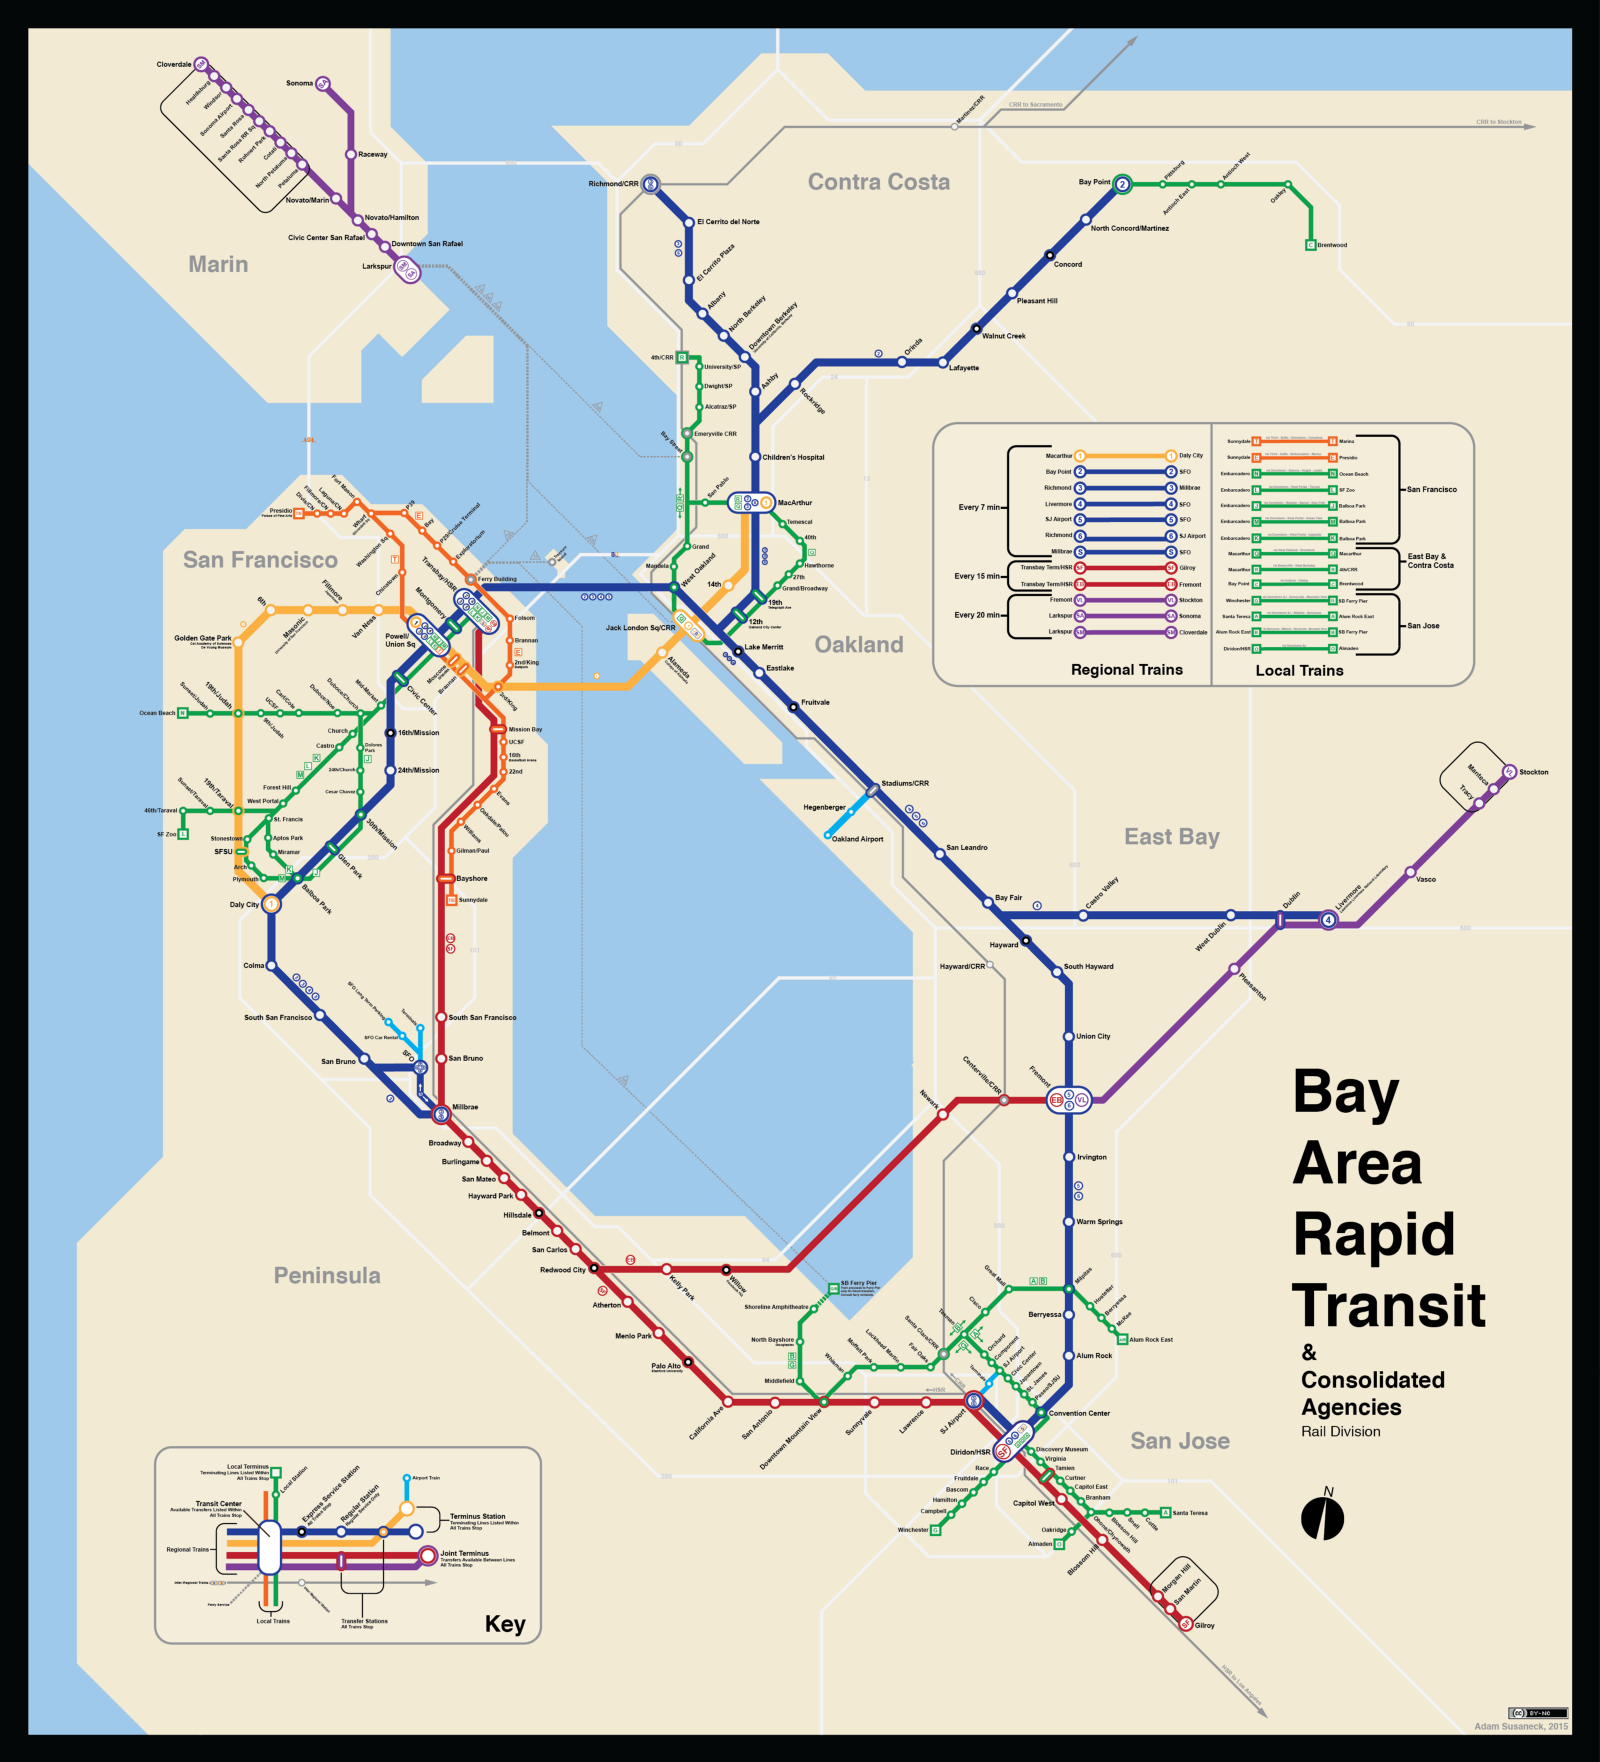 Bay Area Rapid Transit Map Bay Area Transit [Fantasy Map] : bayarea